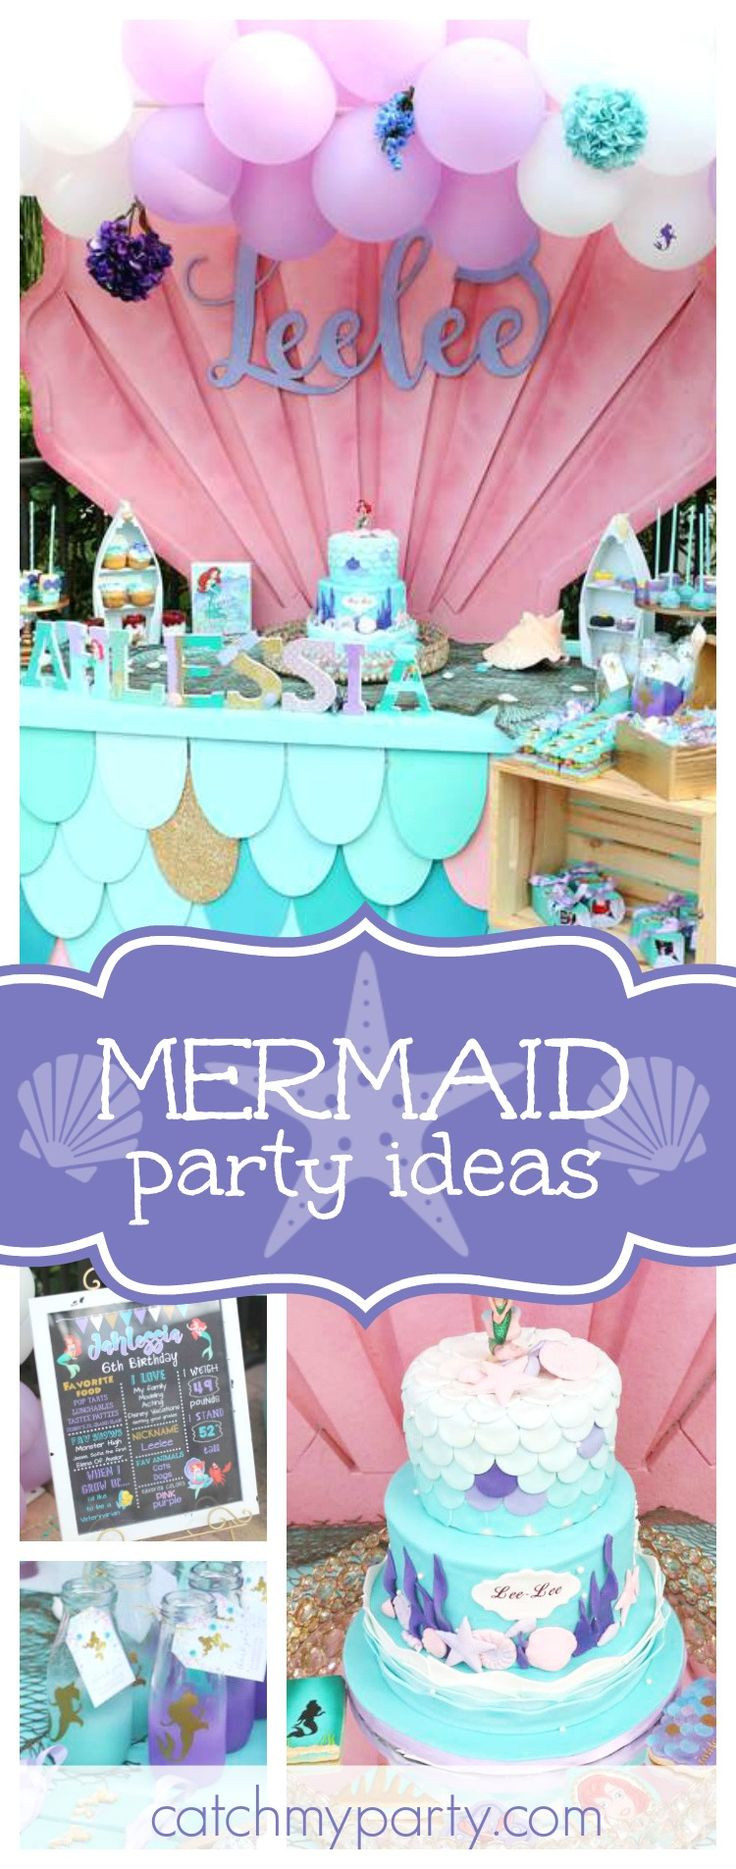 Best ideas about Mermaid Birthday Party Decorations . Save or Pin 3841 best images about Mermaid Party on Pinterest Now.